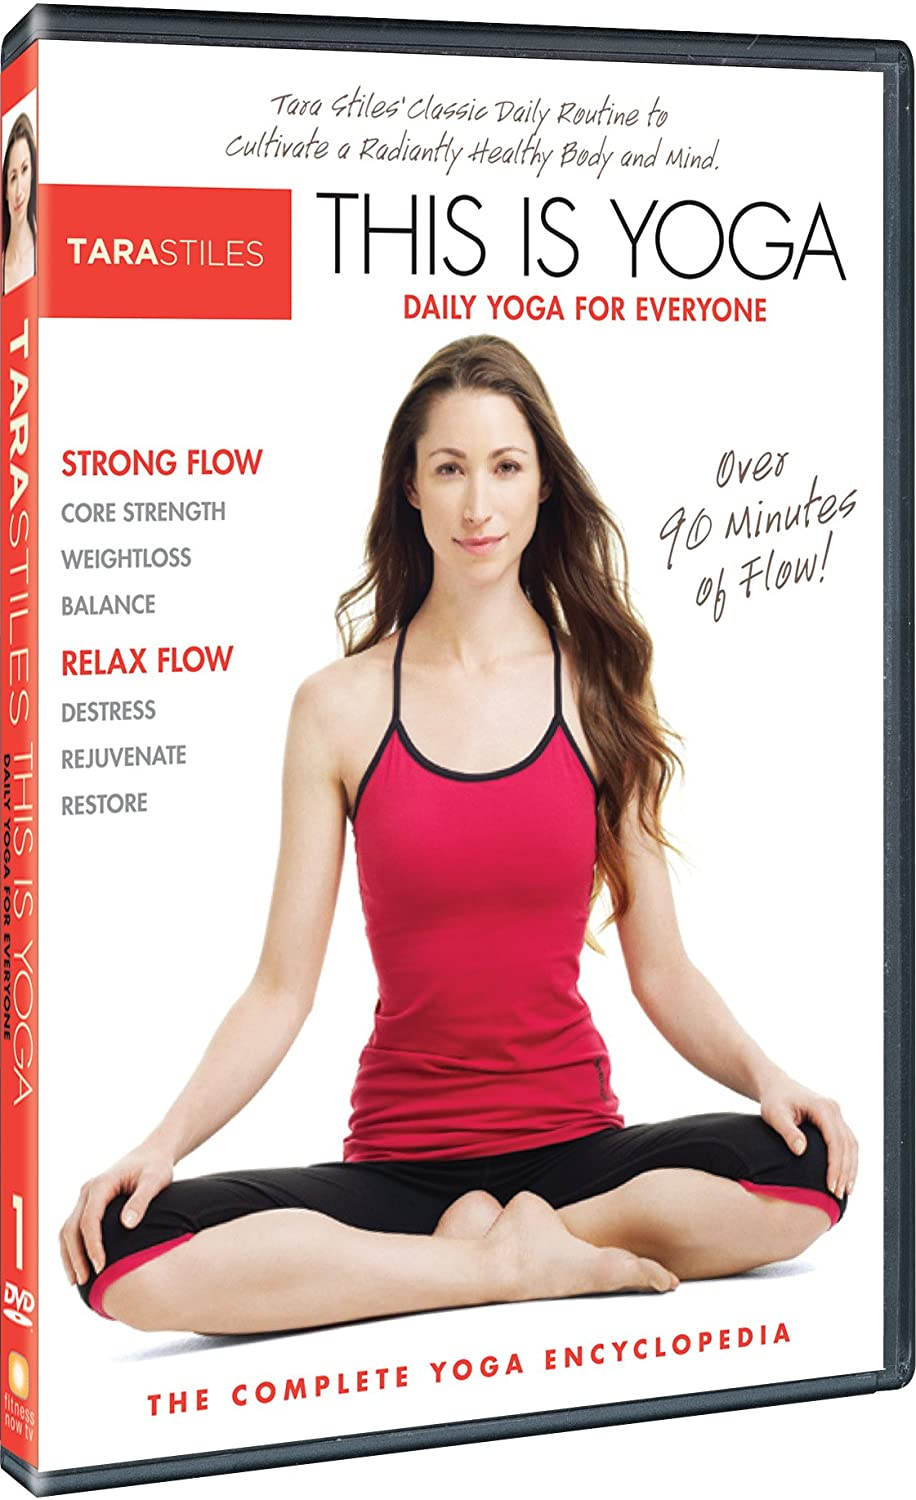 Tara Stiles This is Yoga DVD 1: Daily Yoga for Everyone ...